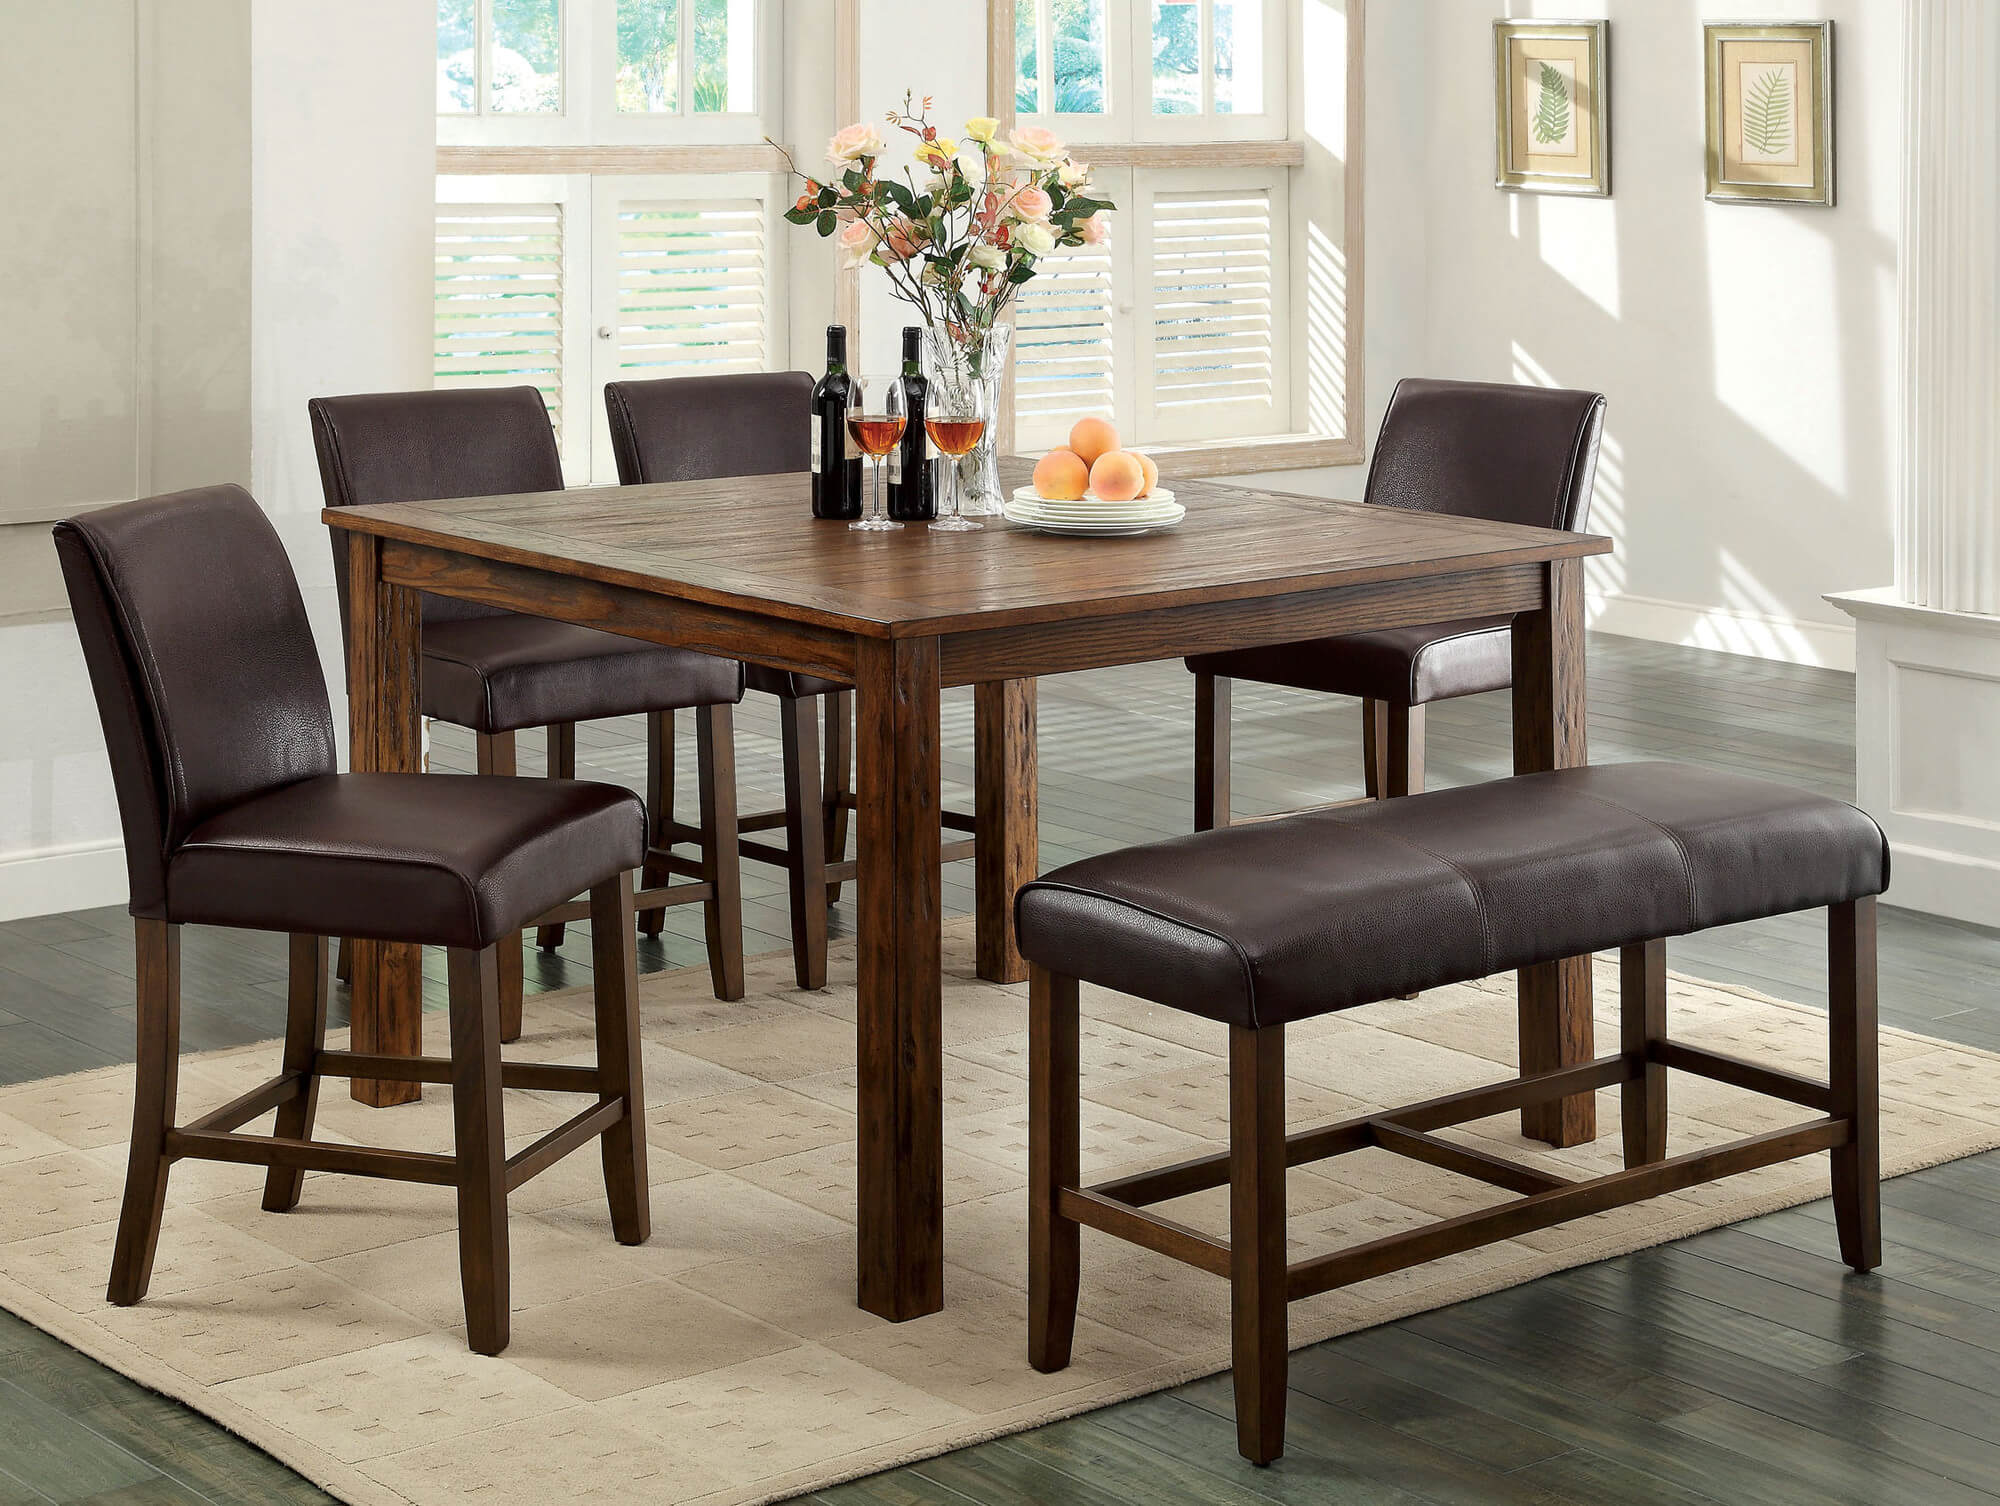 counter height rustic dining room set with bench wood is dark oak finish constructed - Contemporary Dining Room Tables